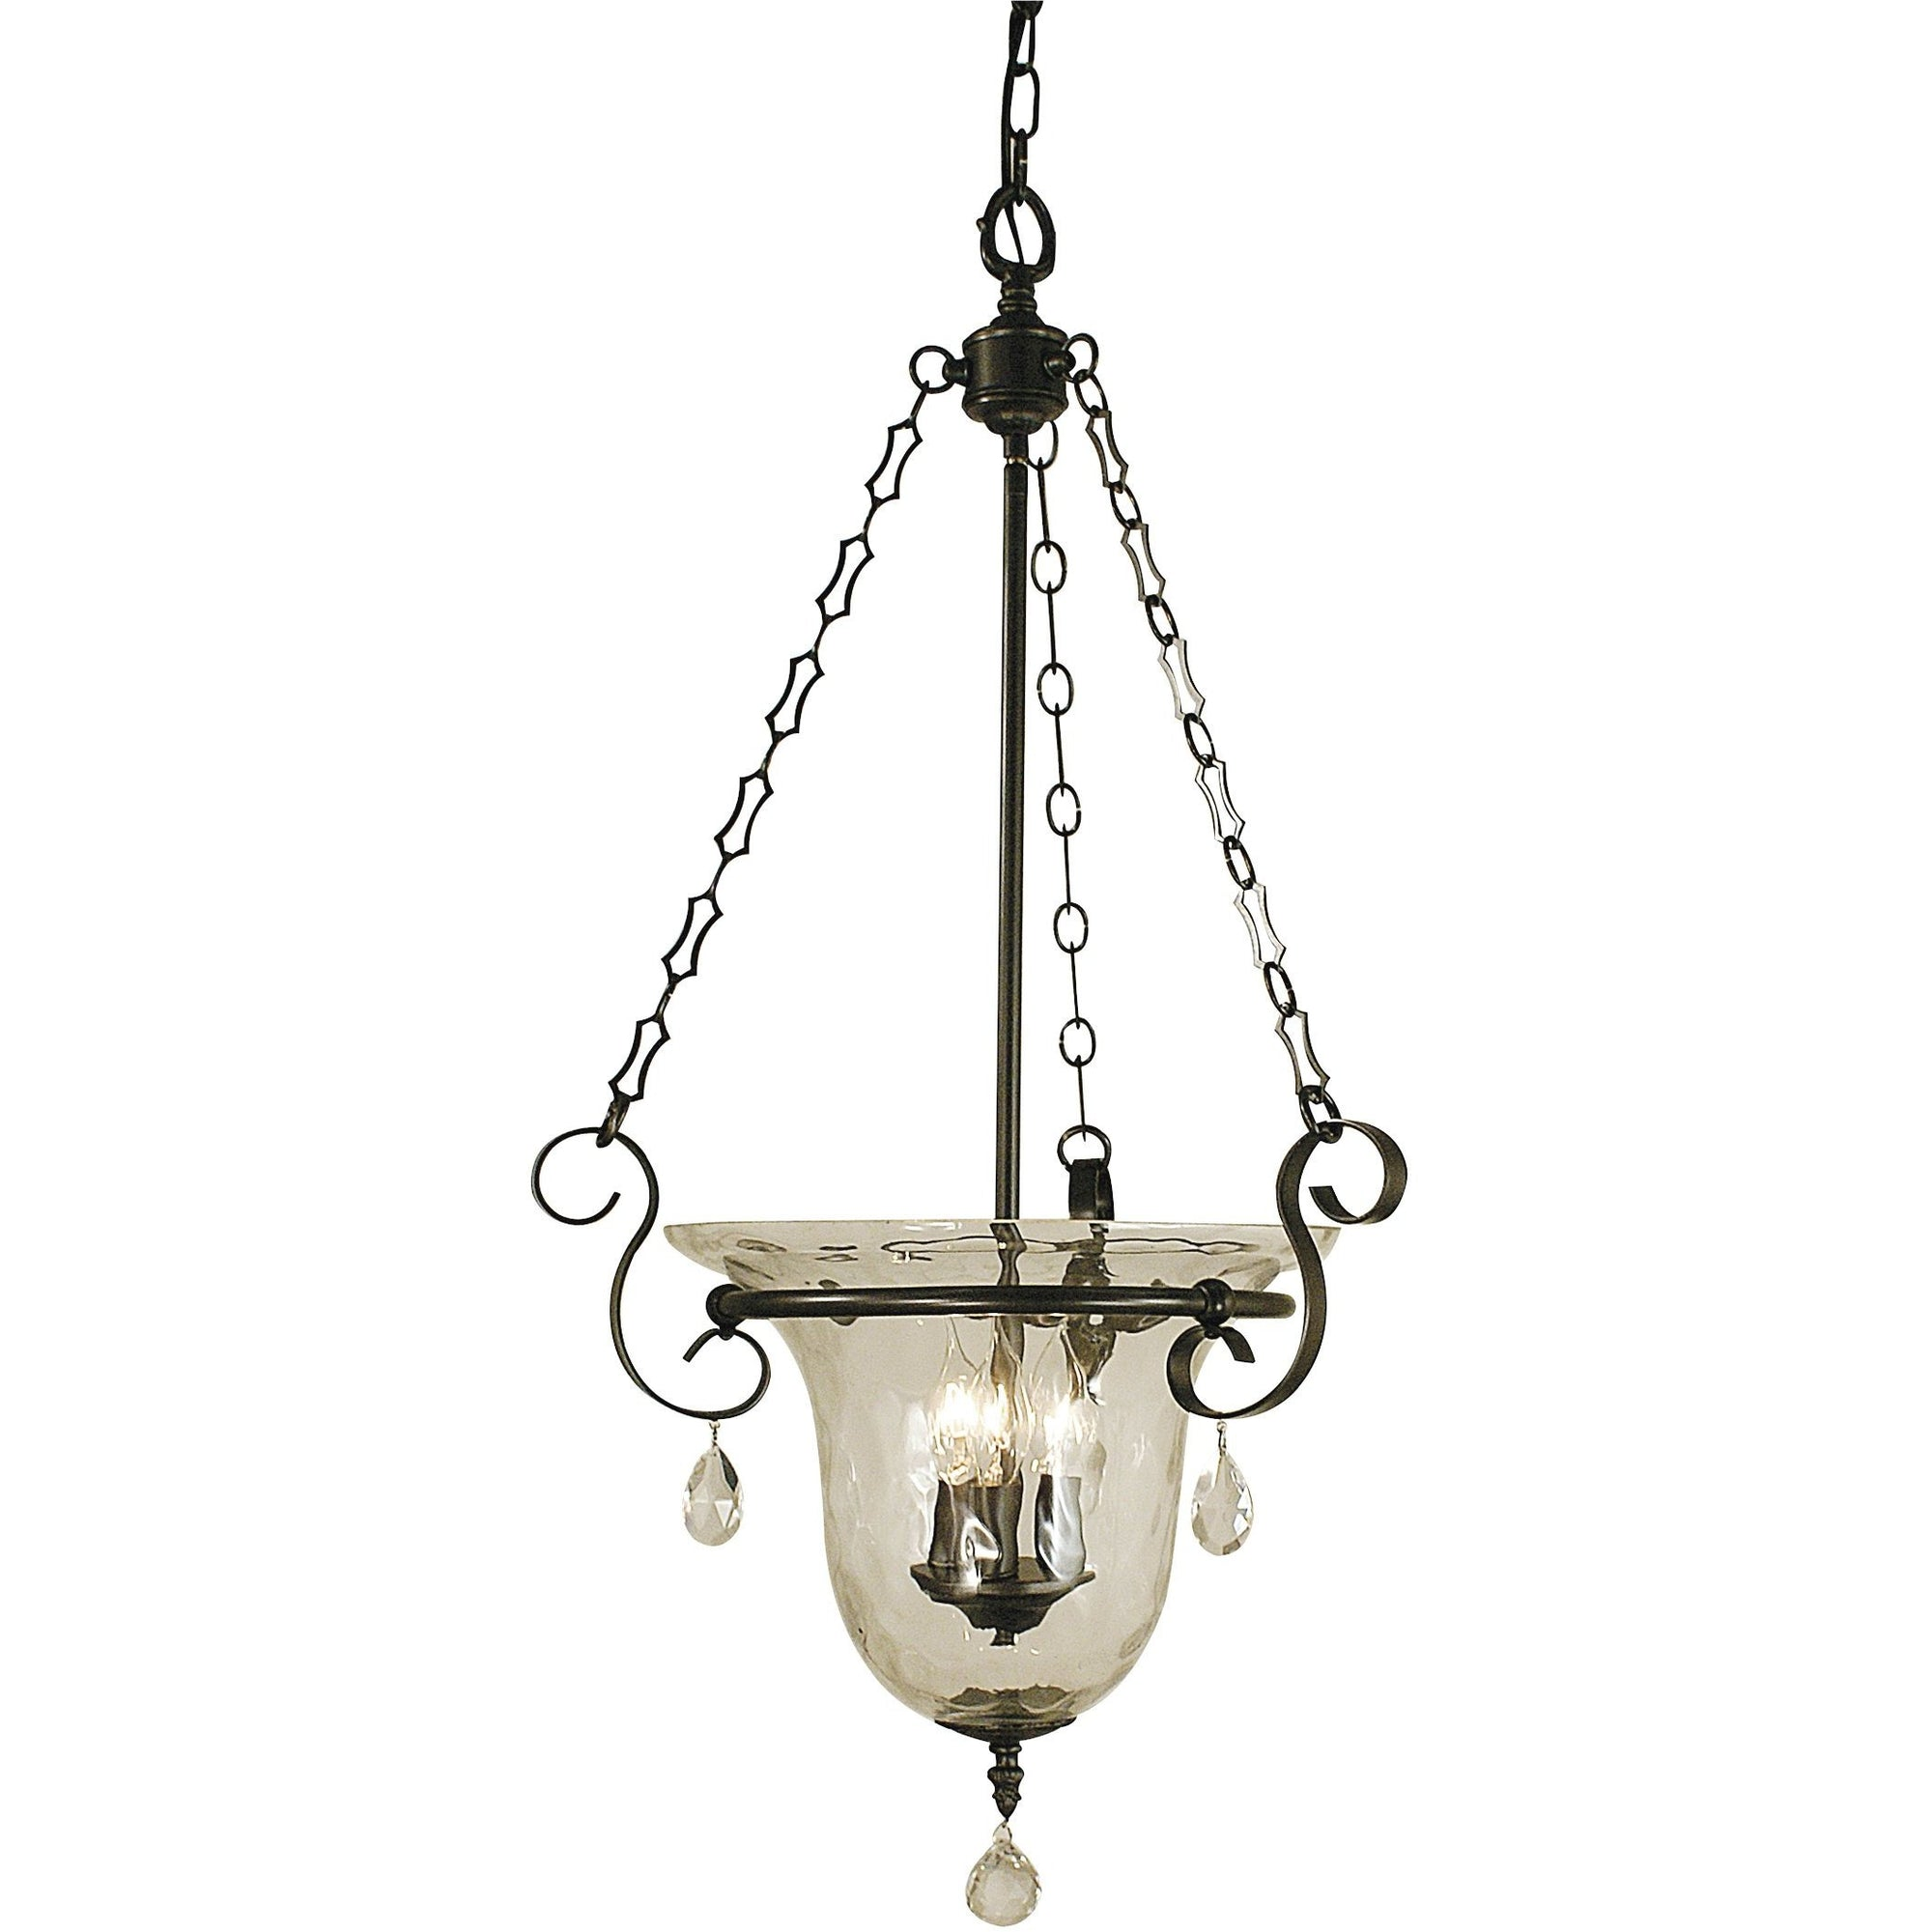 Framburg Foyer Chandeliers Mahogany Bronze 3-Light Mahogany Bronze Carcassonne Foyer Chandelier by Framburg 2919